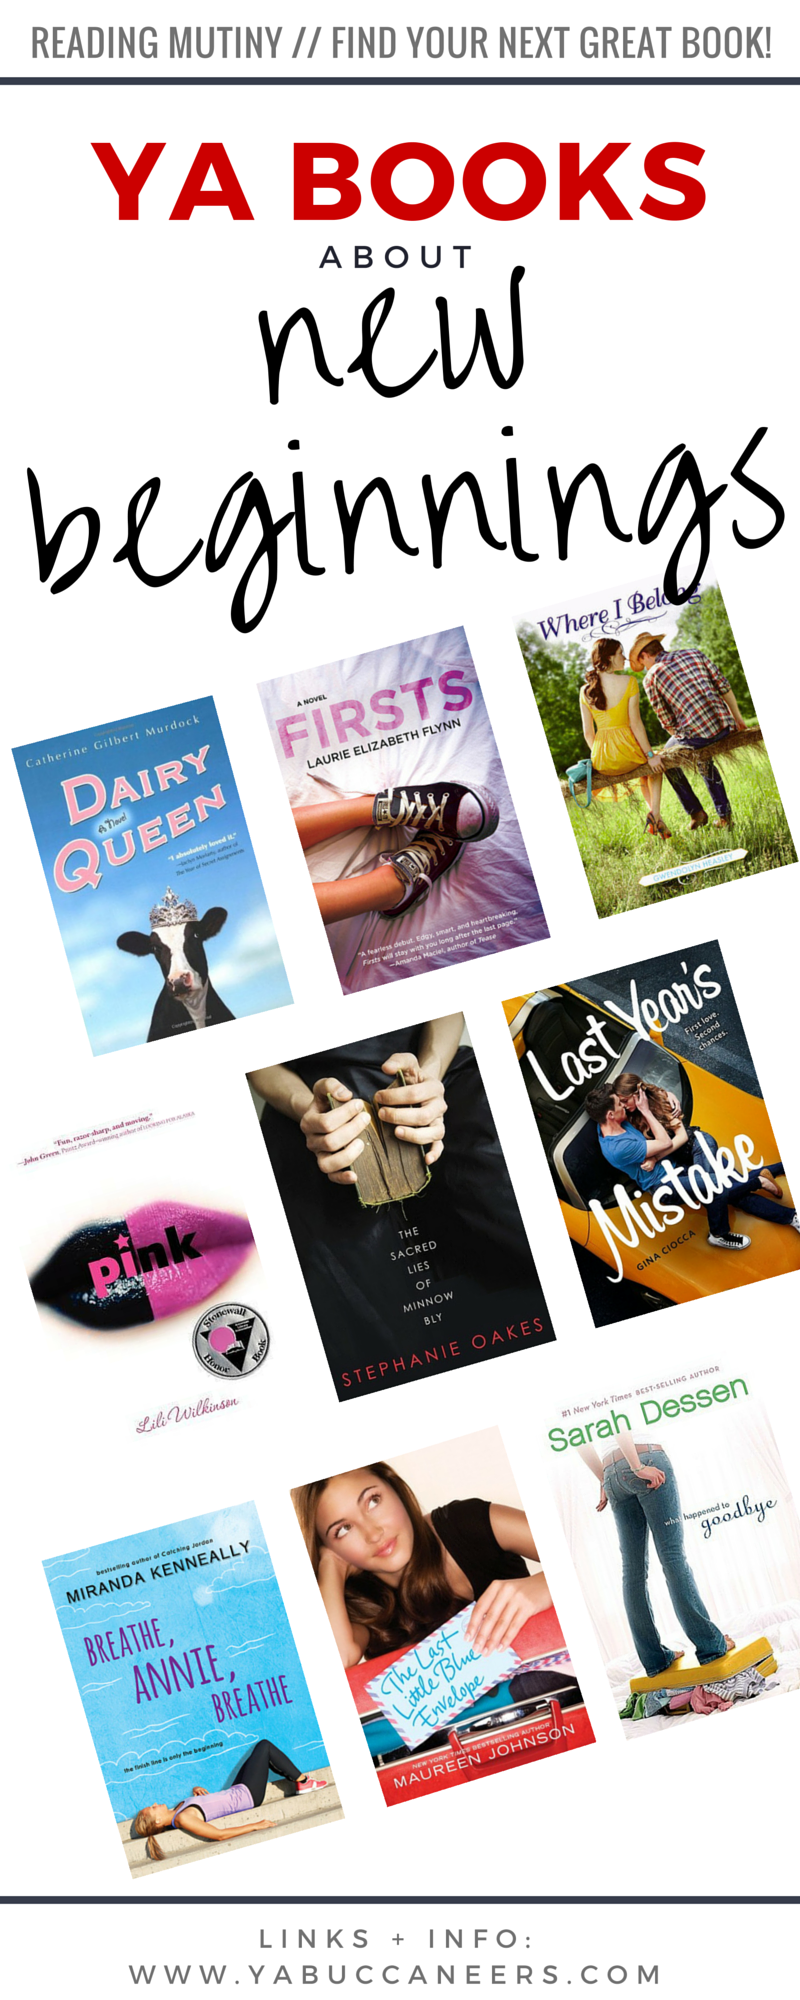 Looking for a new book? Check out this round up of YA books about new beginnings: from a new town, a new school, or a new way of life to new love and relationships. Get the full list and links to the books on YA Buccaneers! Click through >>>>